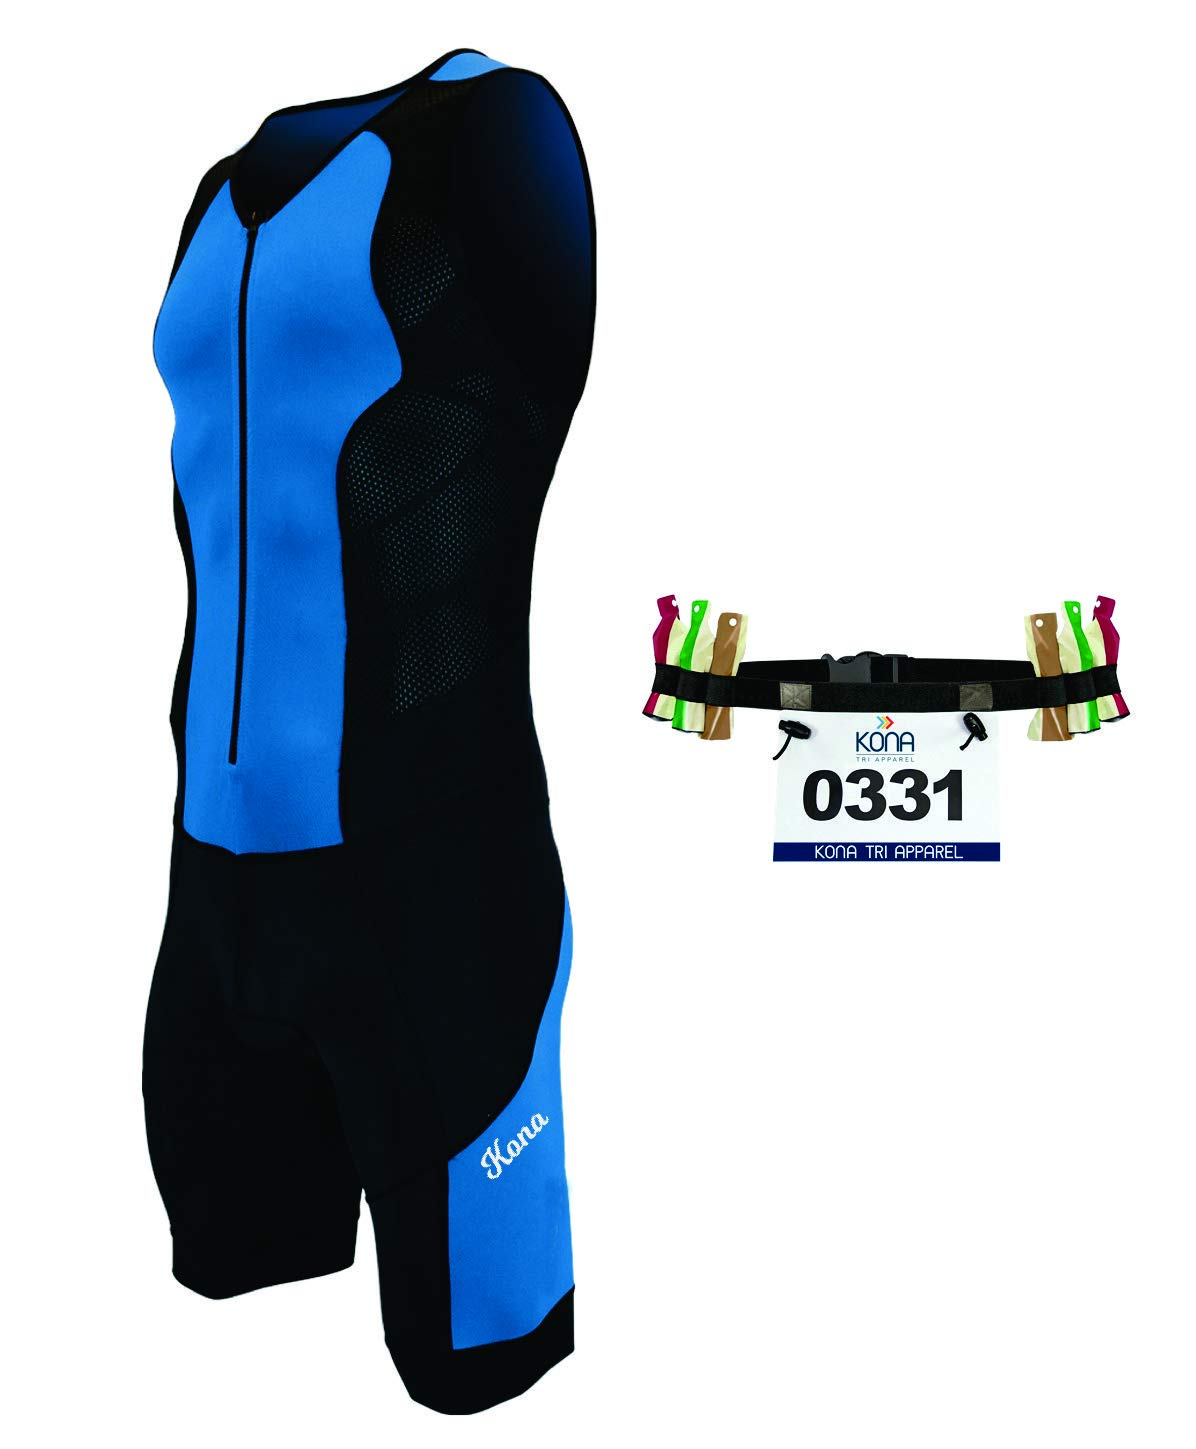 Kona II Mens Triathlon Suit - Sleeveless Speedsuit Skinsuit Trisuit with Storage Pocket and Bonus Race Bib Belt